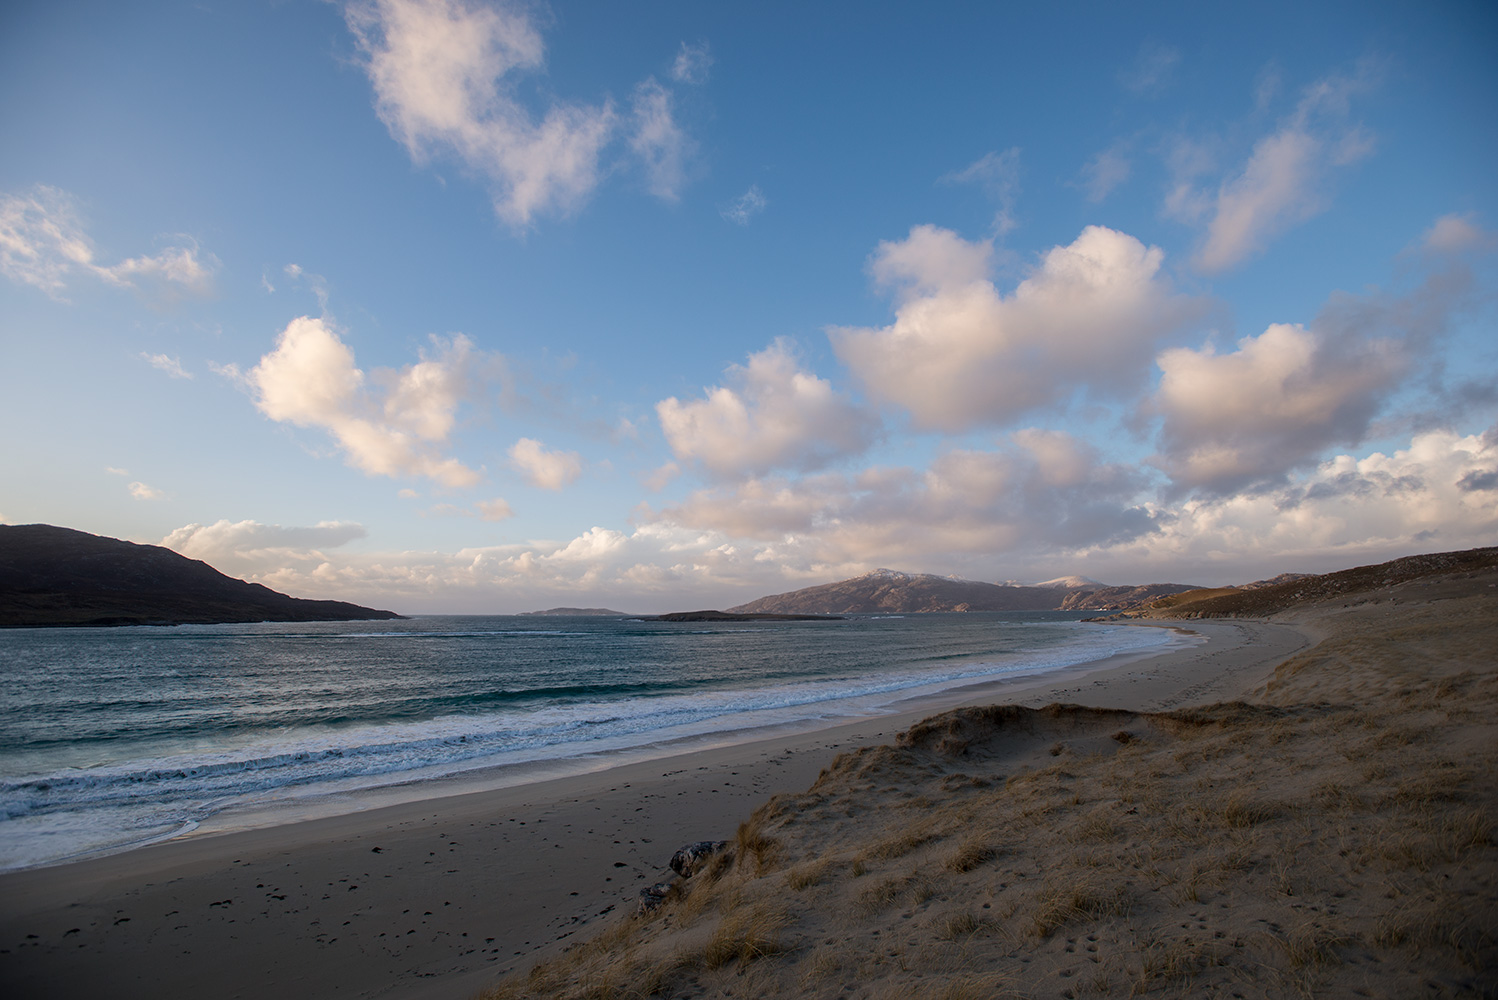 Hushinish, Isle of Harris, Outer Hebrides